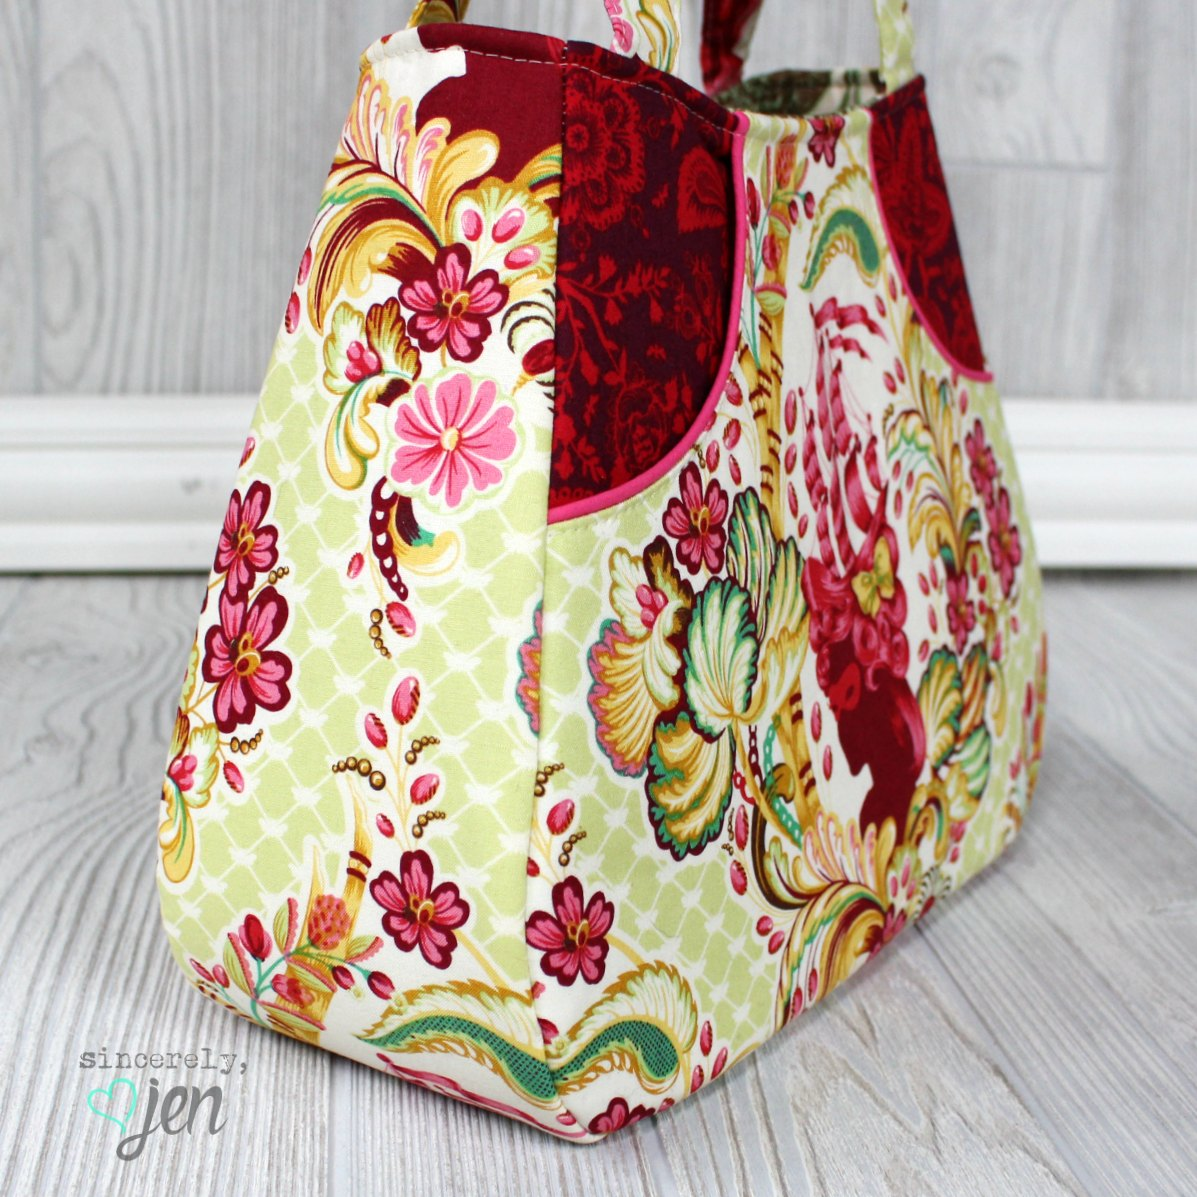 Ethel A Tutorial JenAdding To Sincerely Swoon's Tote Front Pockets TJulFc35K1